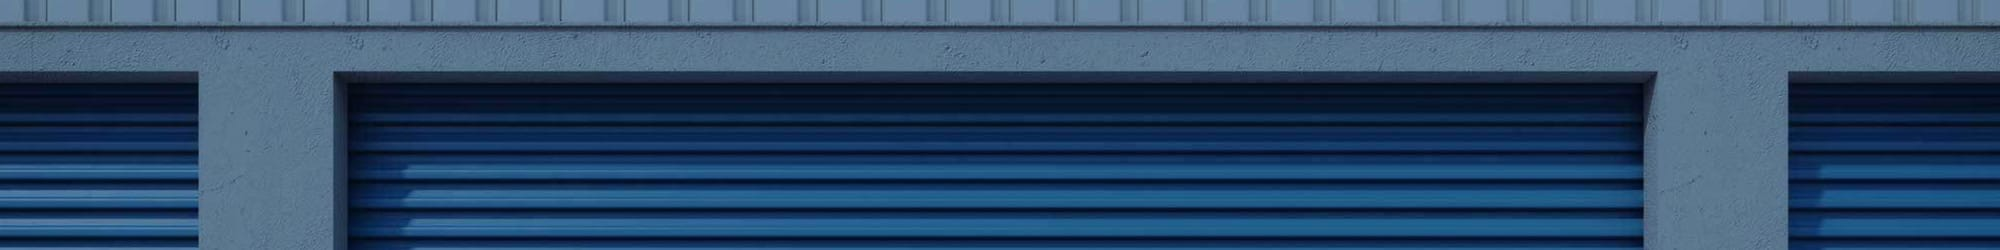 Contact Storaway Self Storage for all your self storage needs